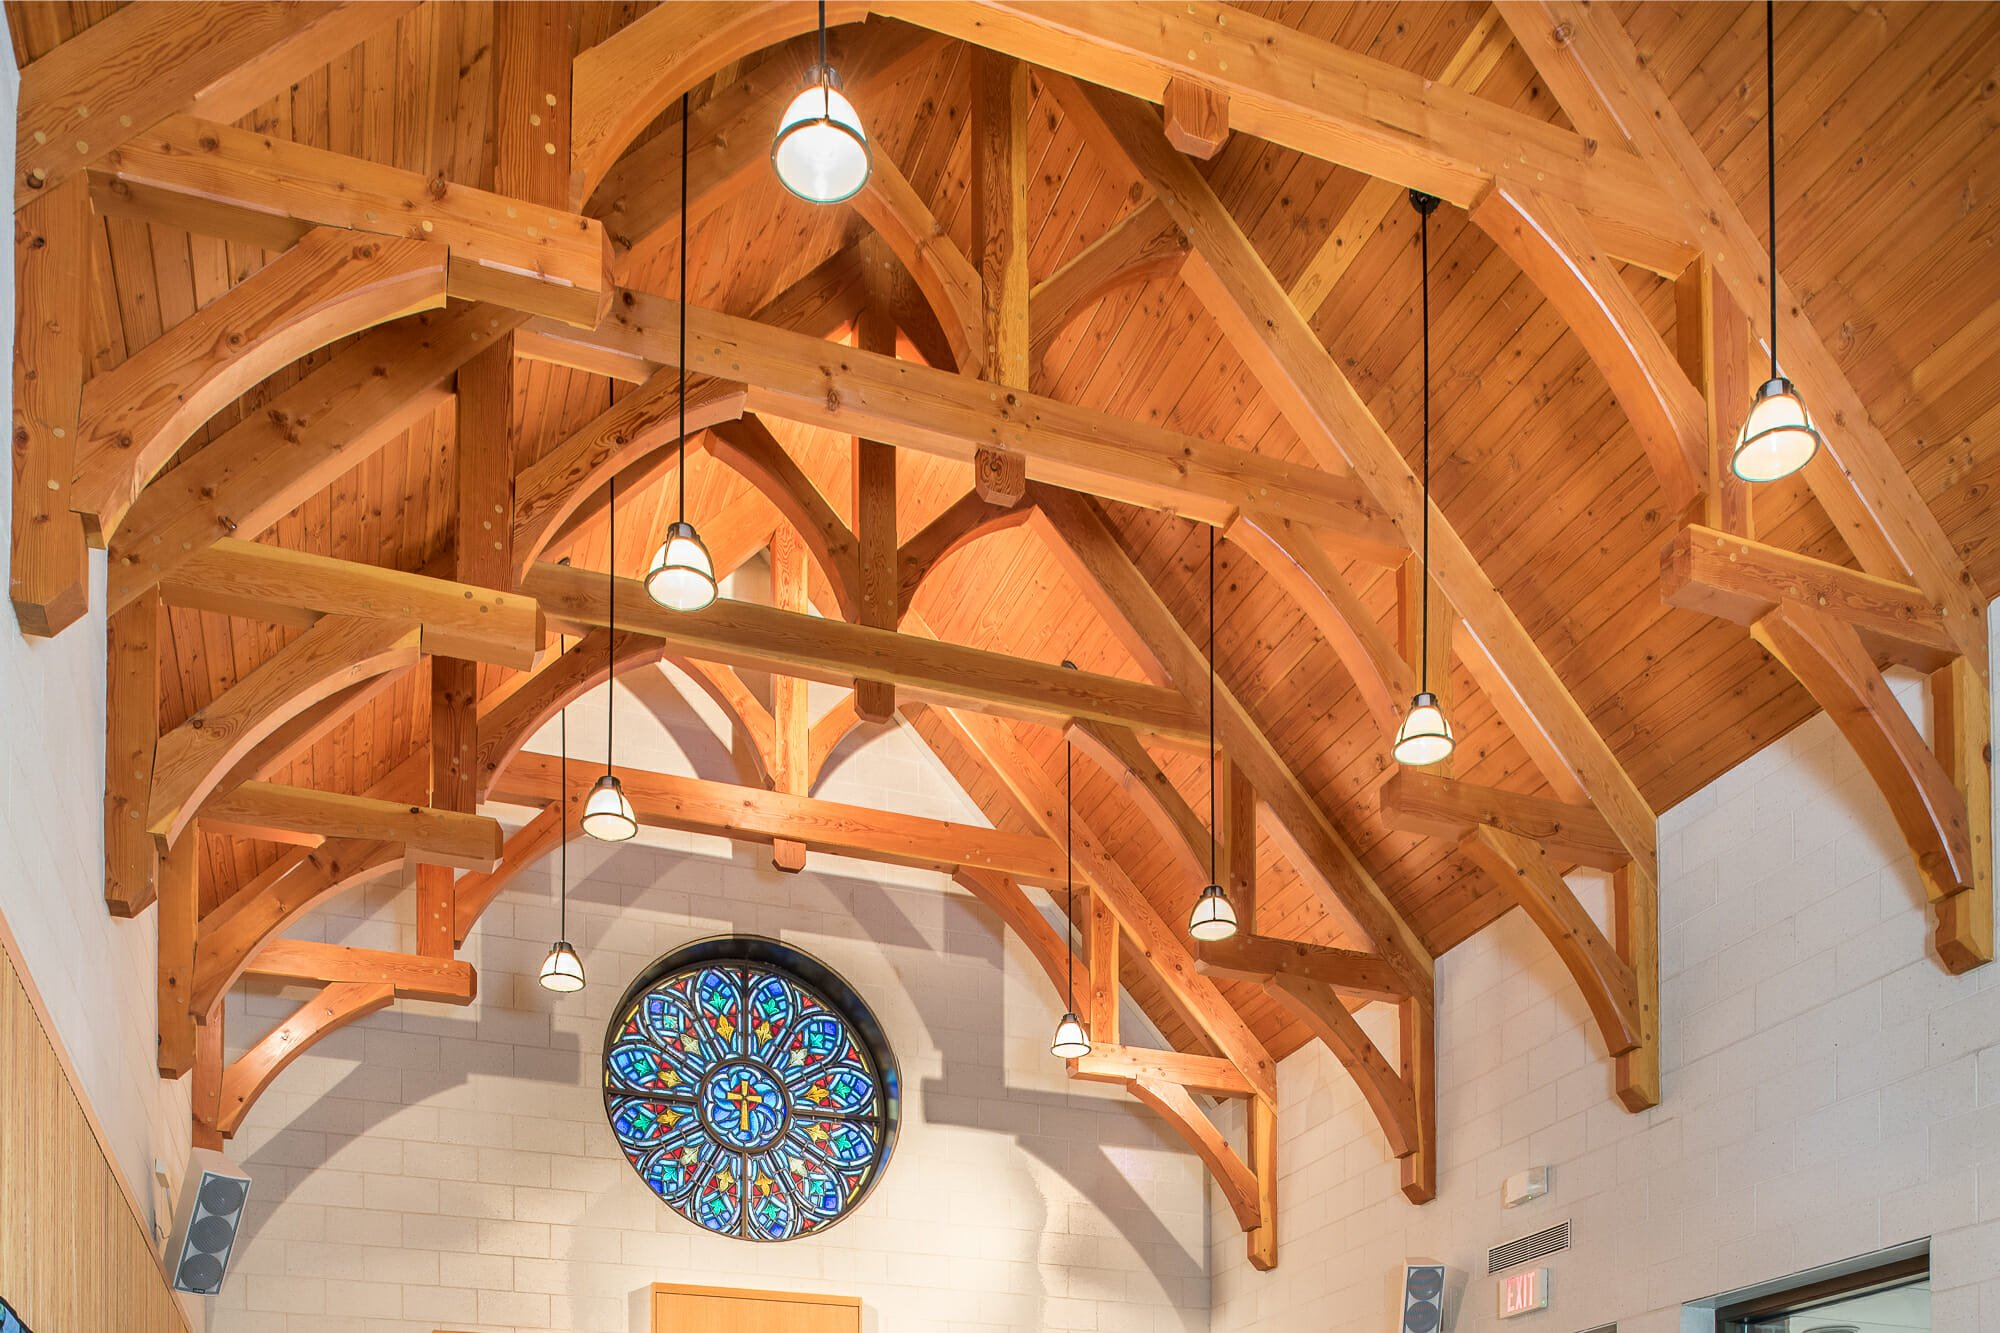 Interior of Westminster Presbyterian Church with Hammer Trusses and Stained Glass window